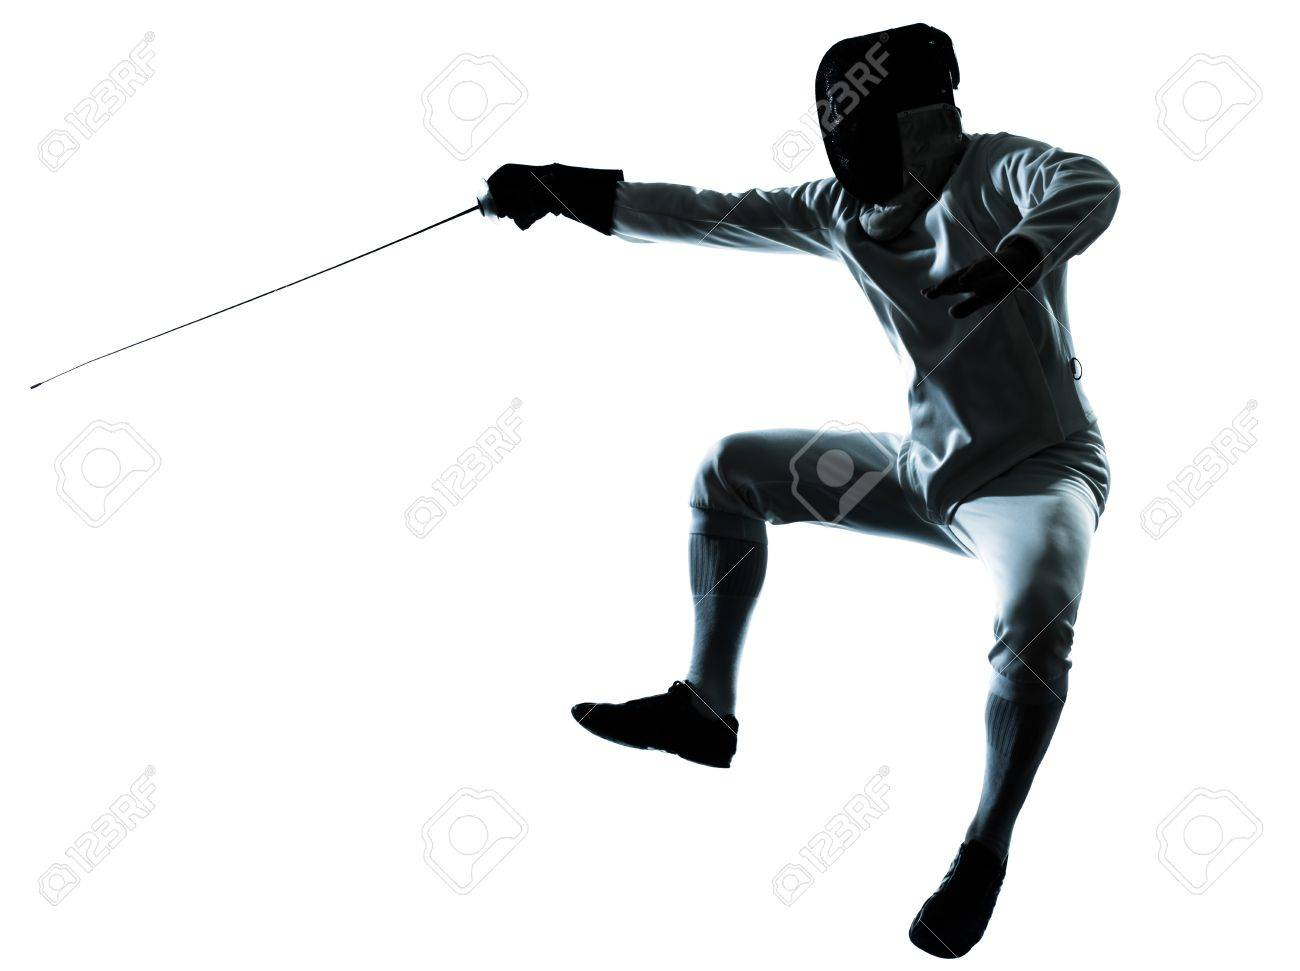 one man fencing silhouette in studio isolated on white background Stock Photo - 14649867